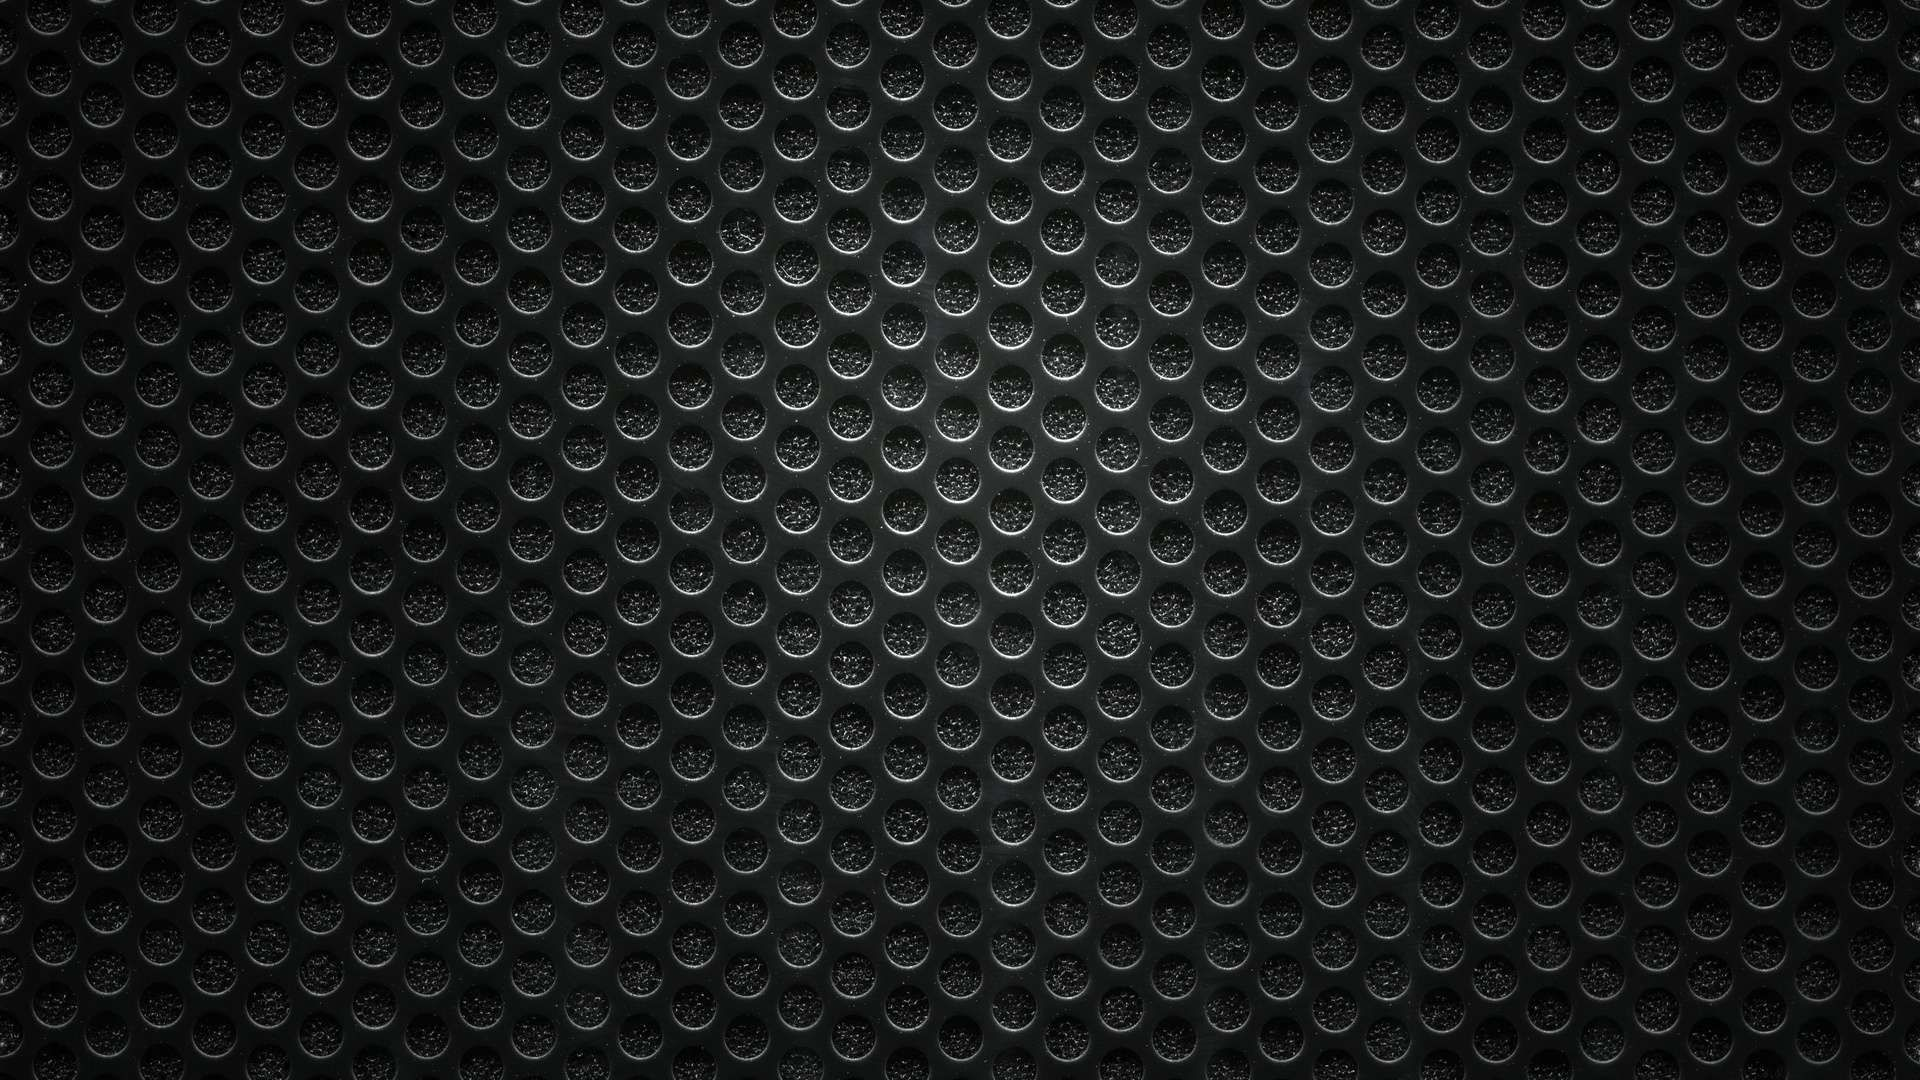 Black Background Texture Hd Wallpaper 1080p